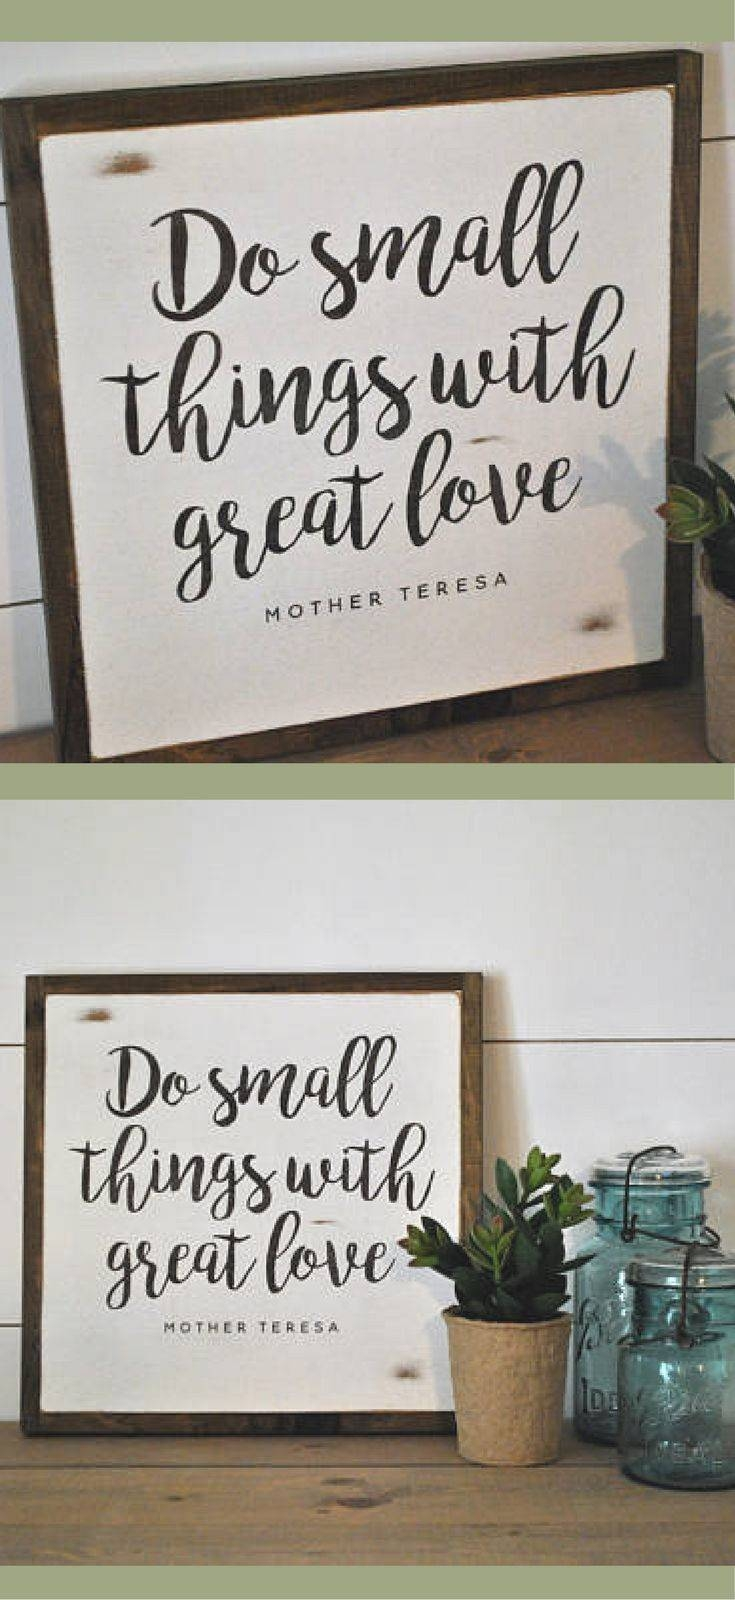 Best 25+ Farmhouse Wall Art Ideas On Pinterest | Living Room Wall In Current Farmhouse Wall Art (View 3 of 25)